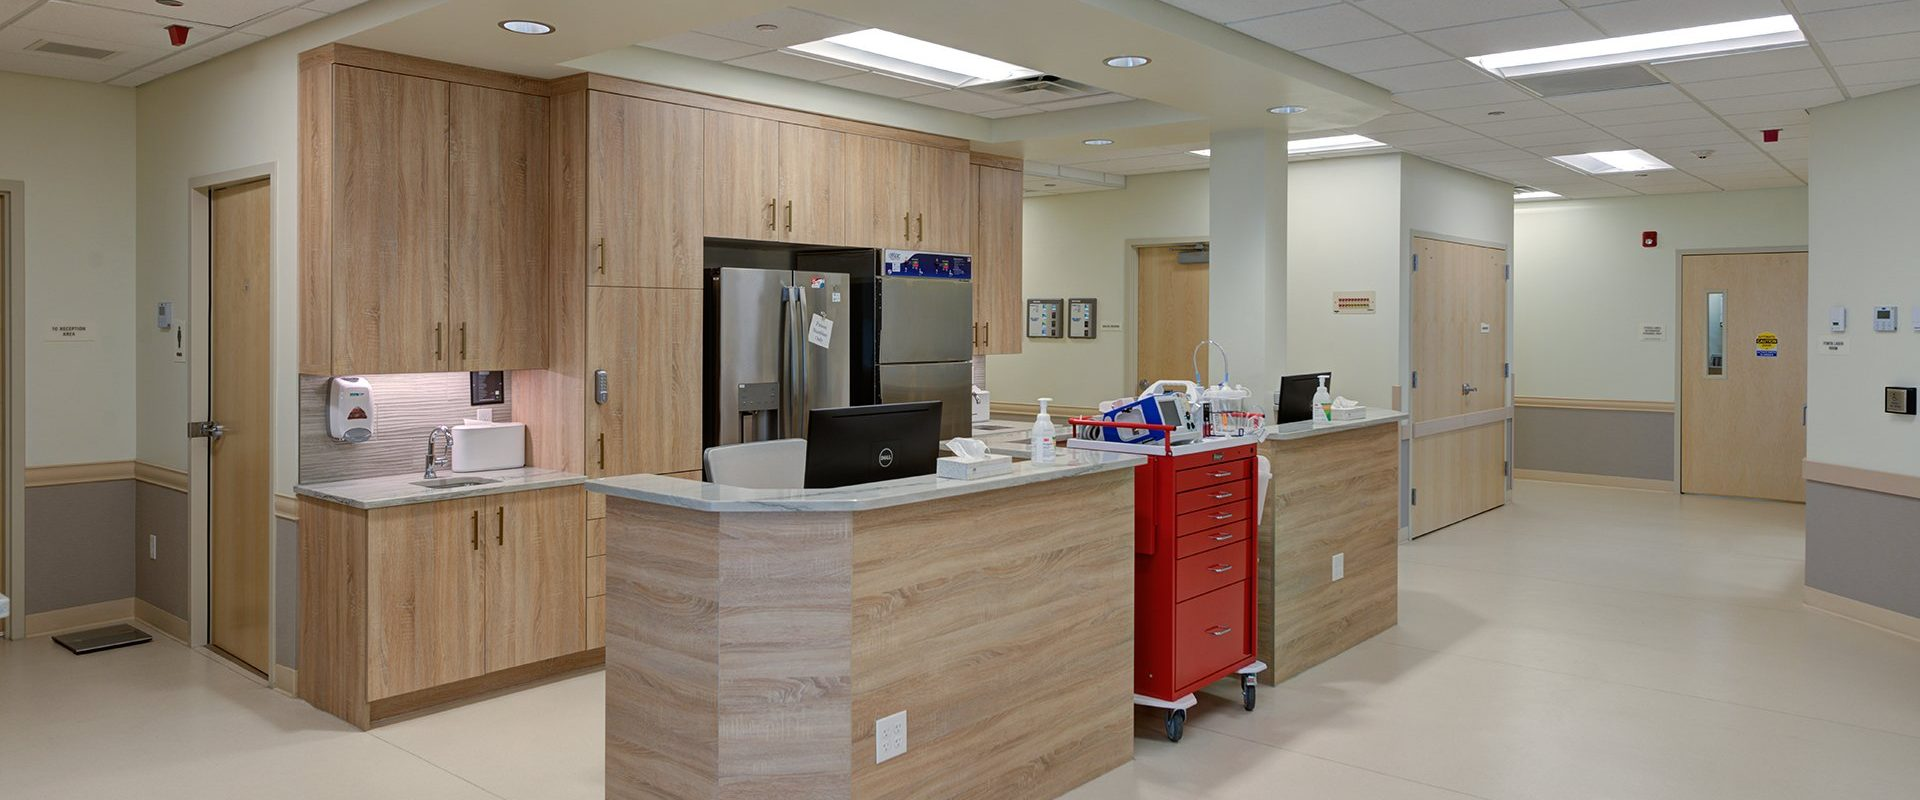 Southwest Surgery Center Nurse Station